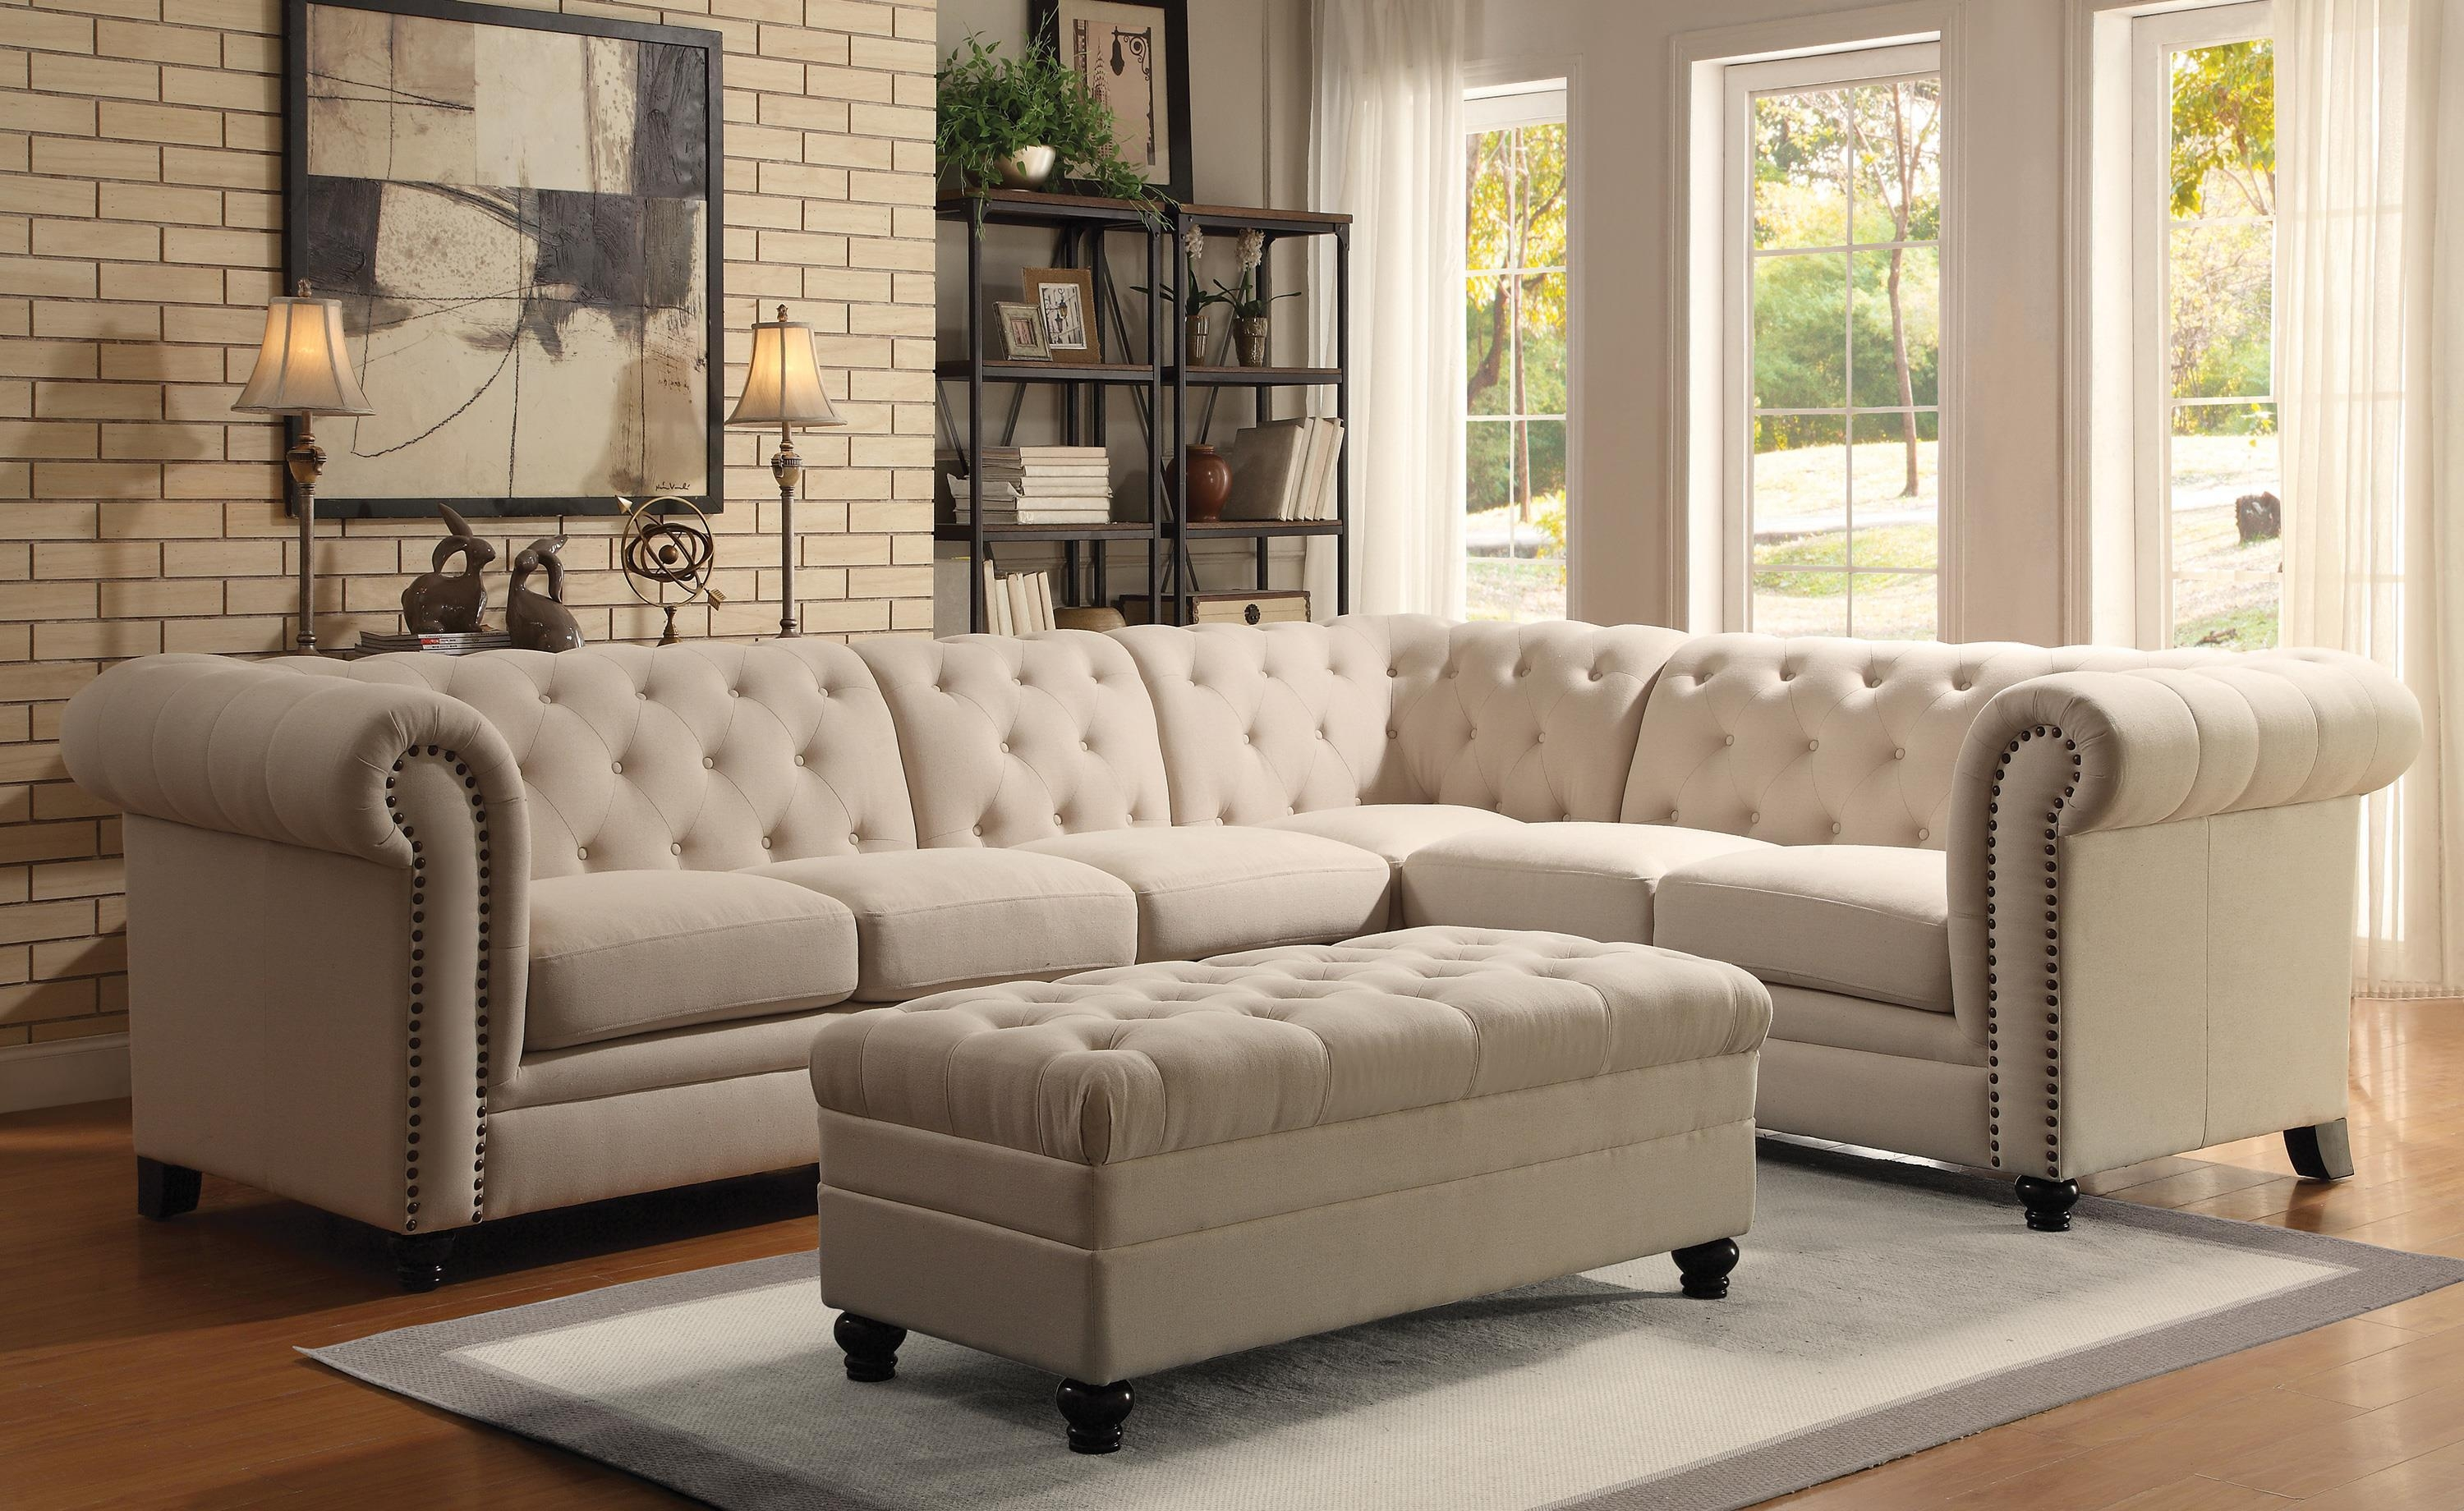 coaster tess sectional sofa best filling for seat cushions coasters fine furniture victoria victorian